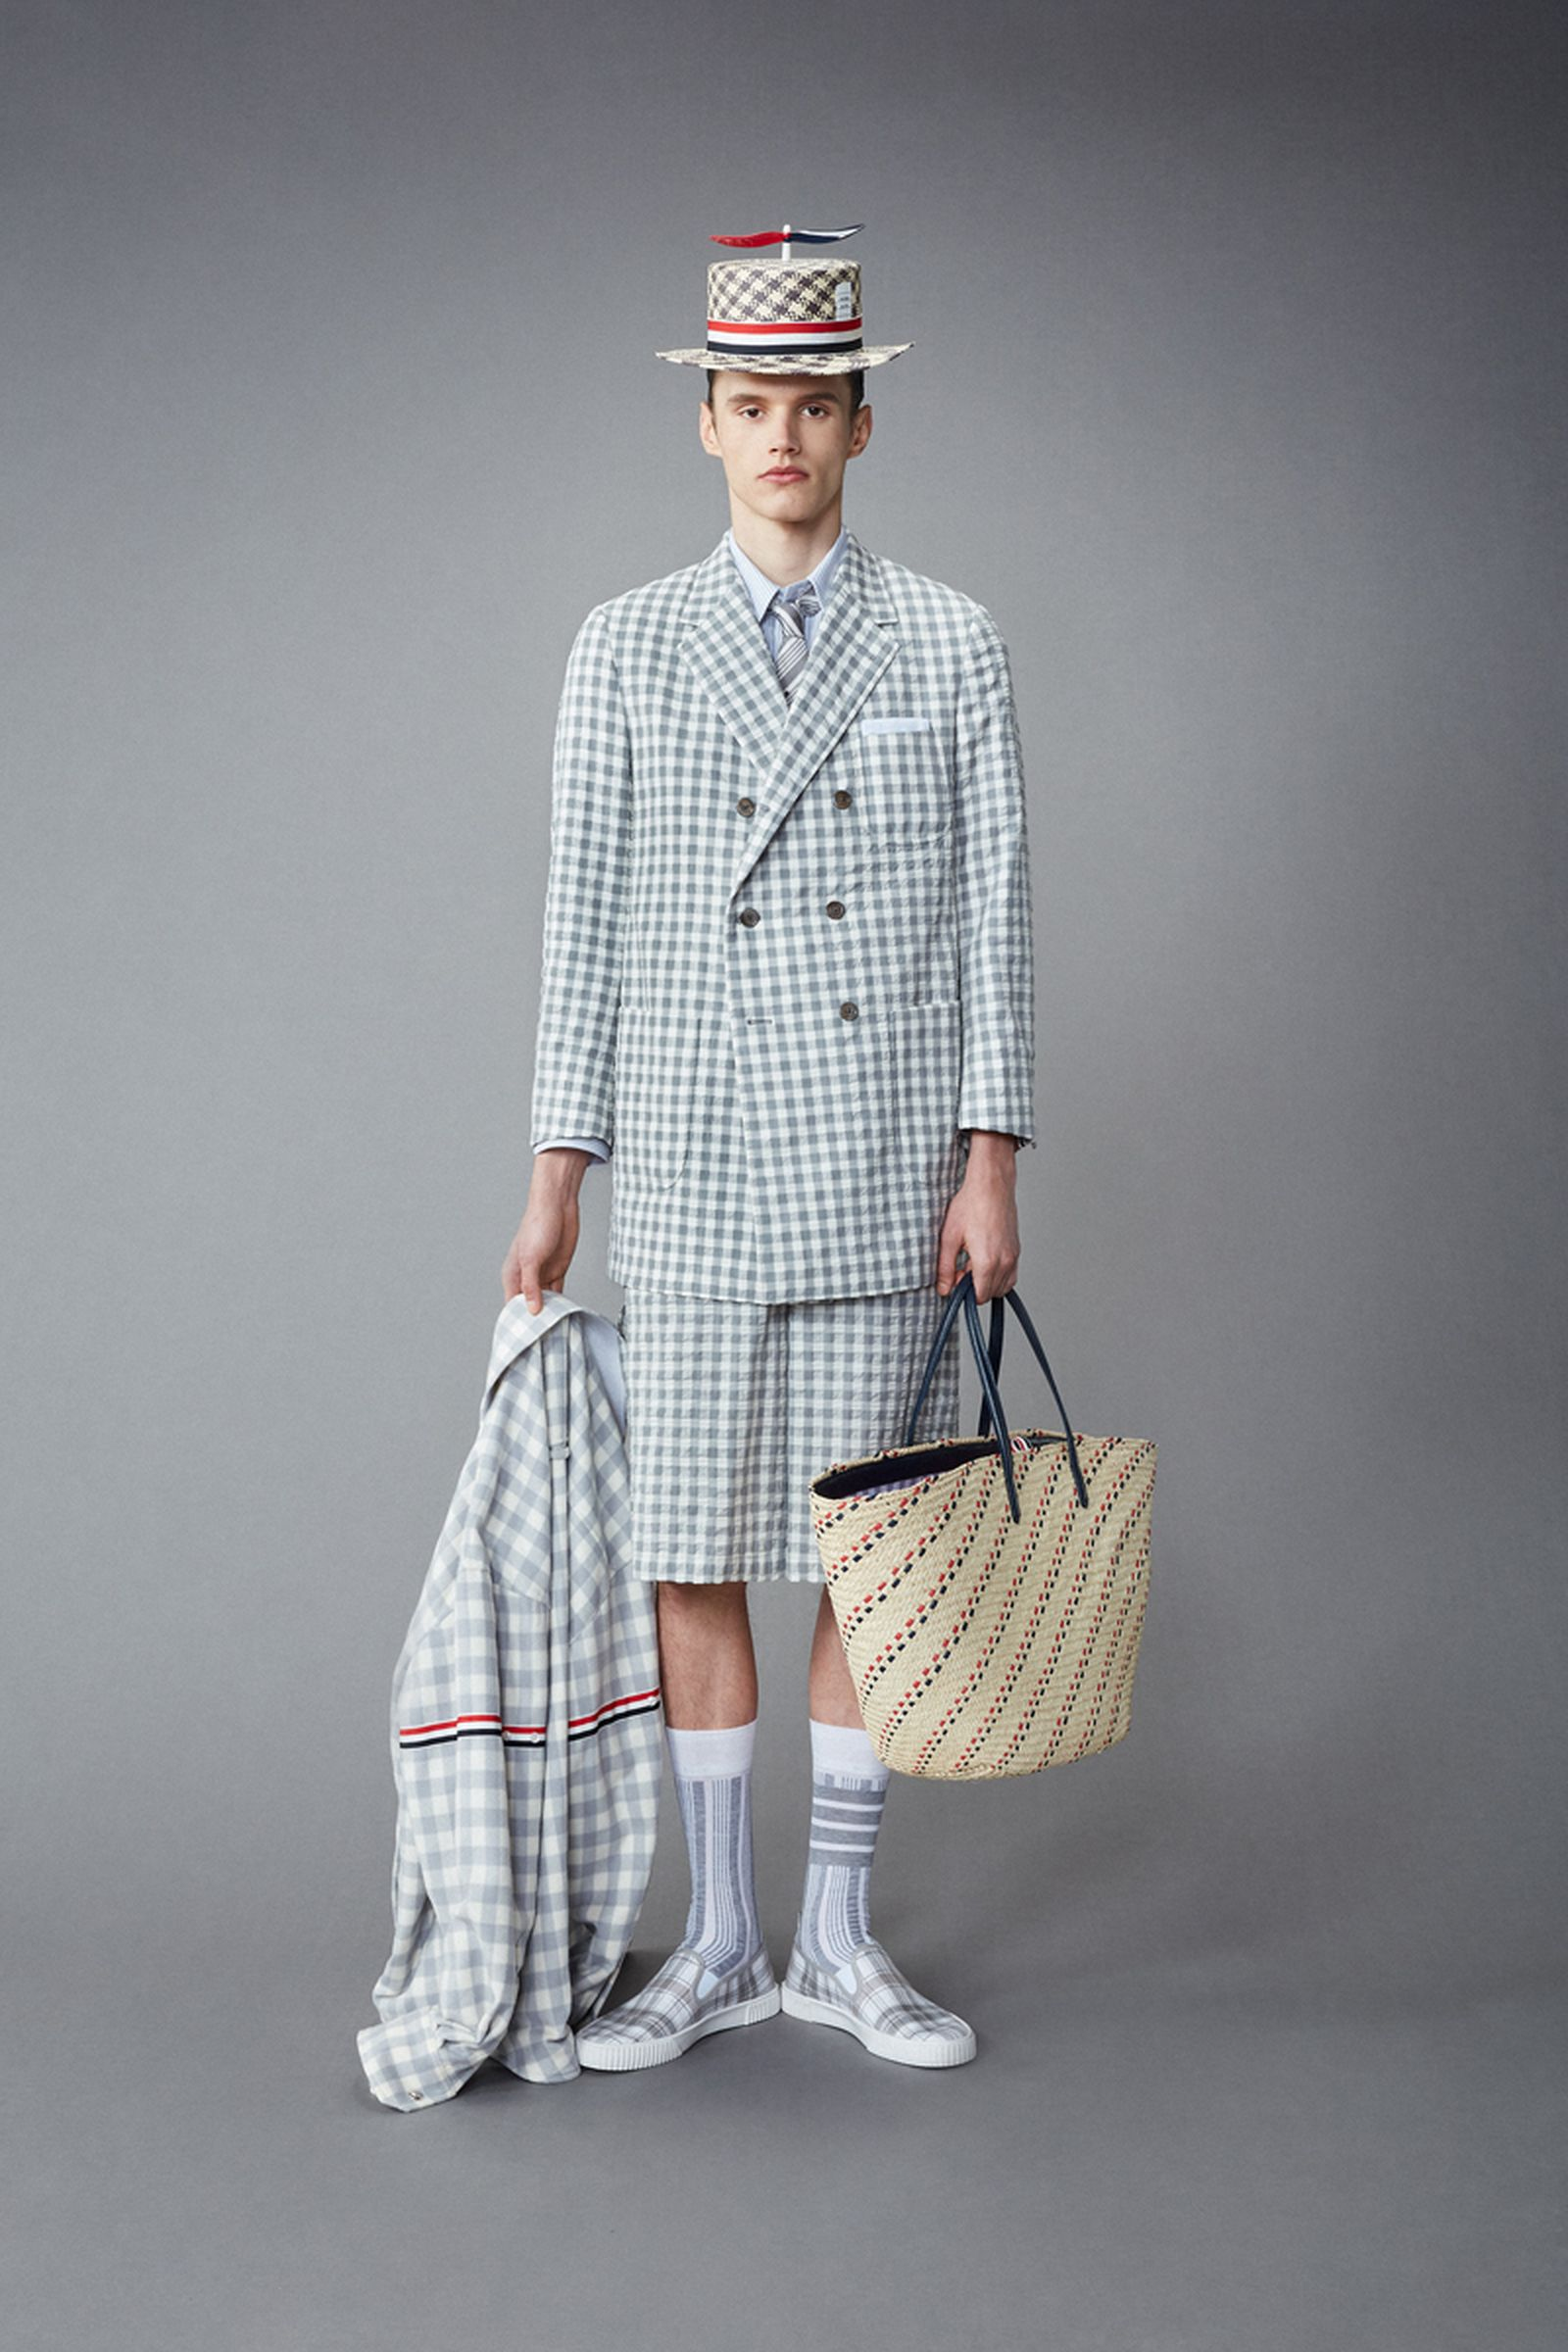 thom-browne-resort-2022-collection- (10)